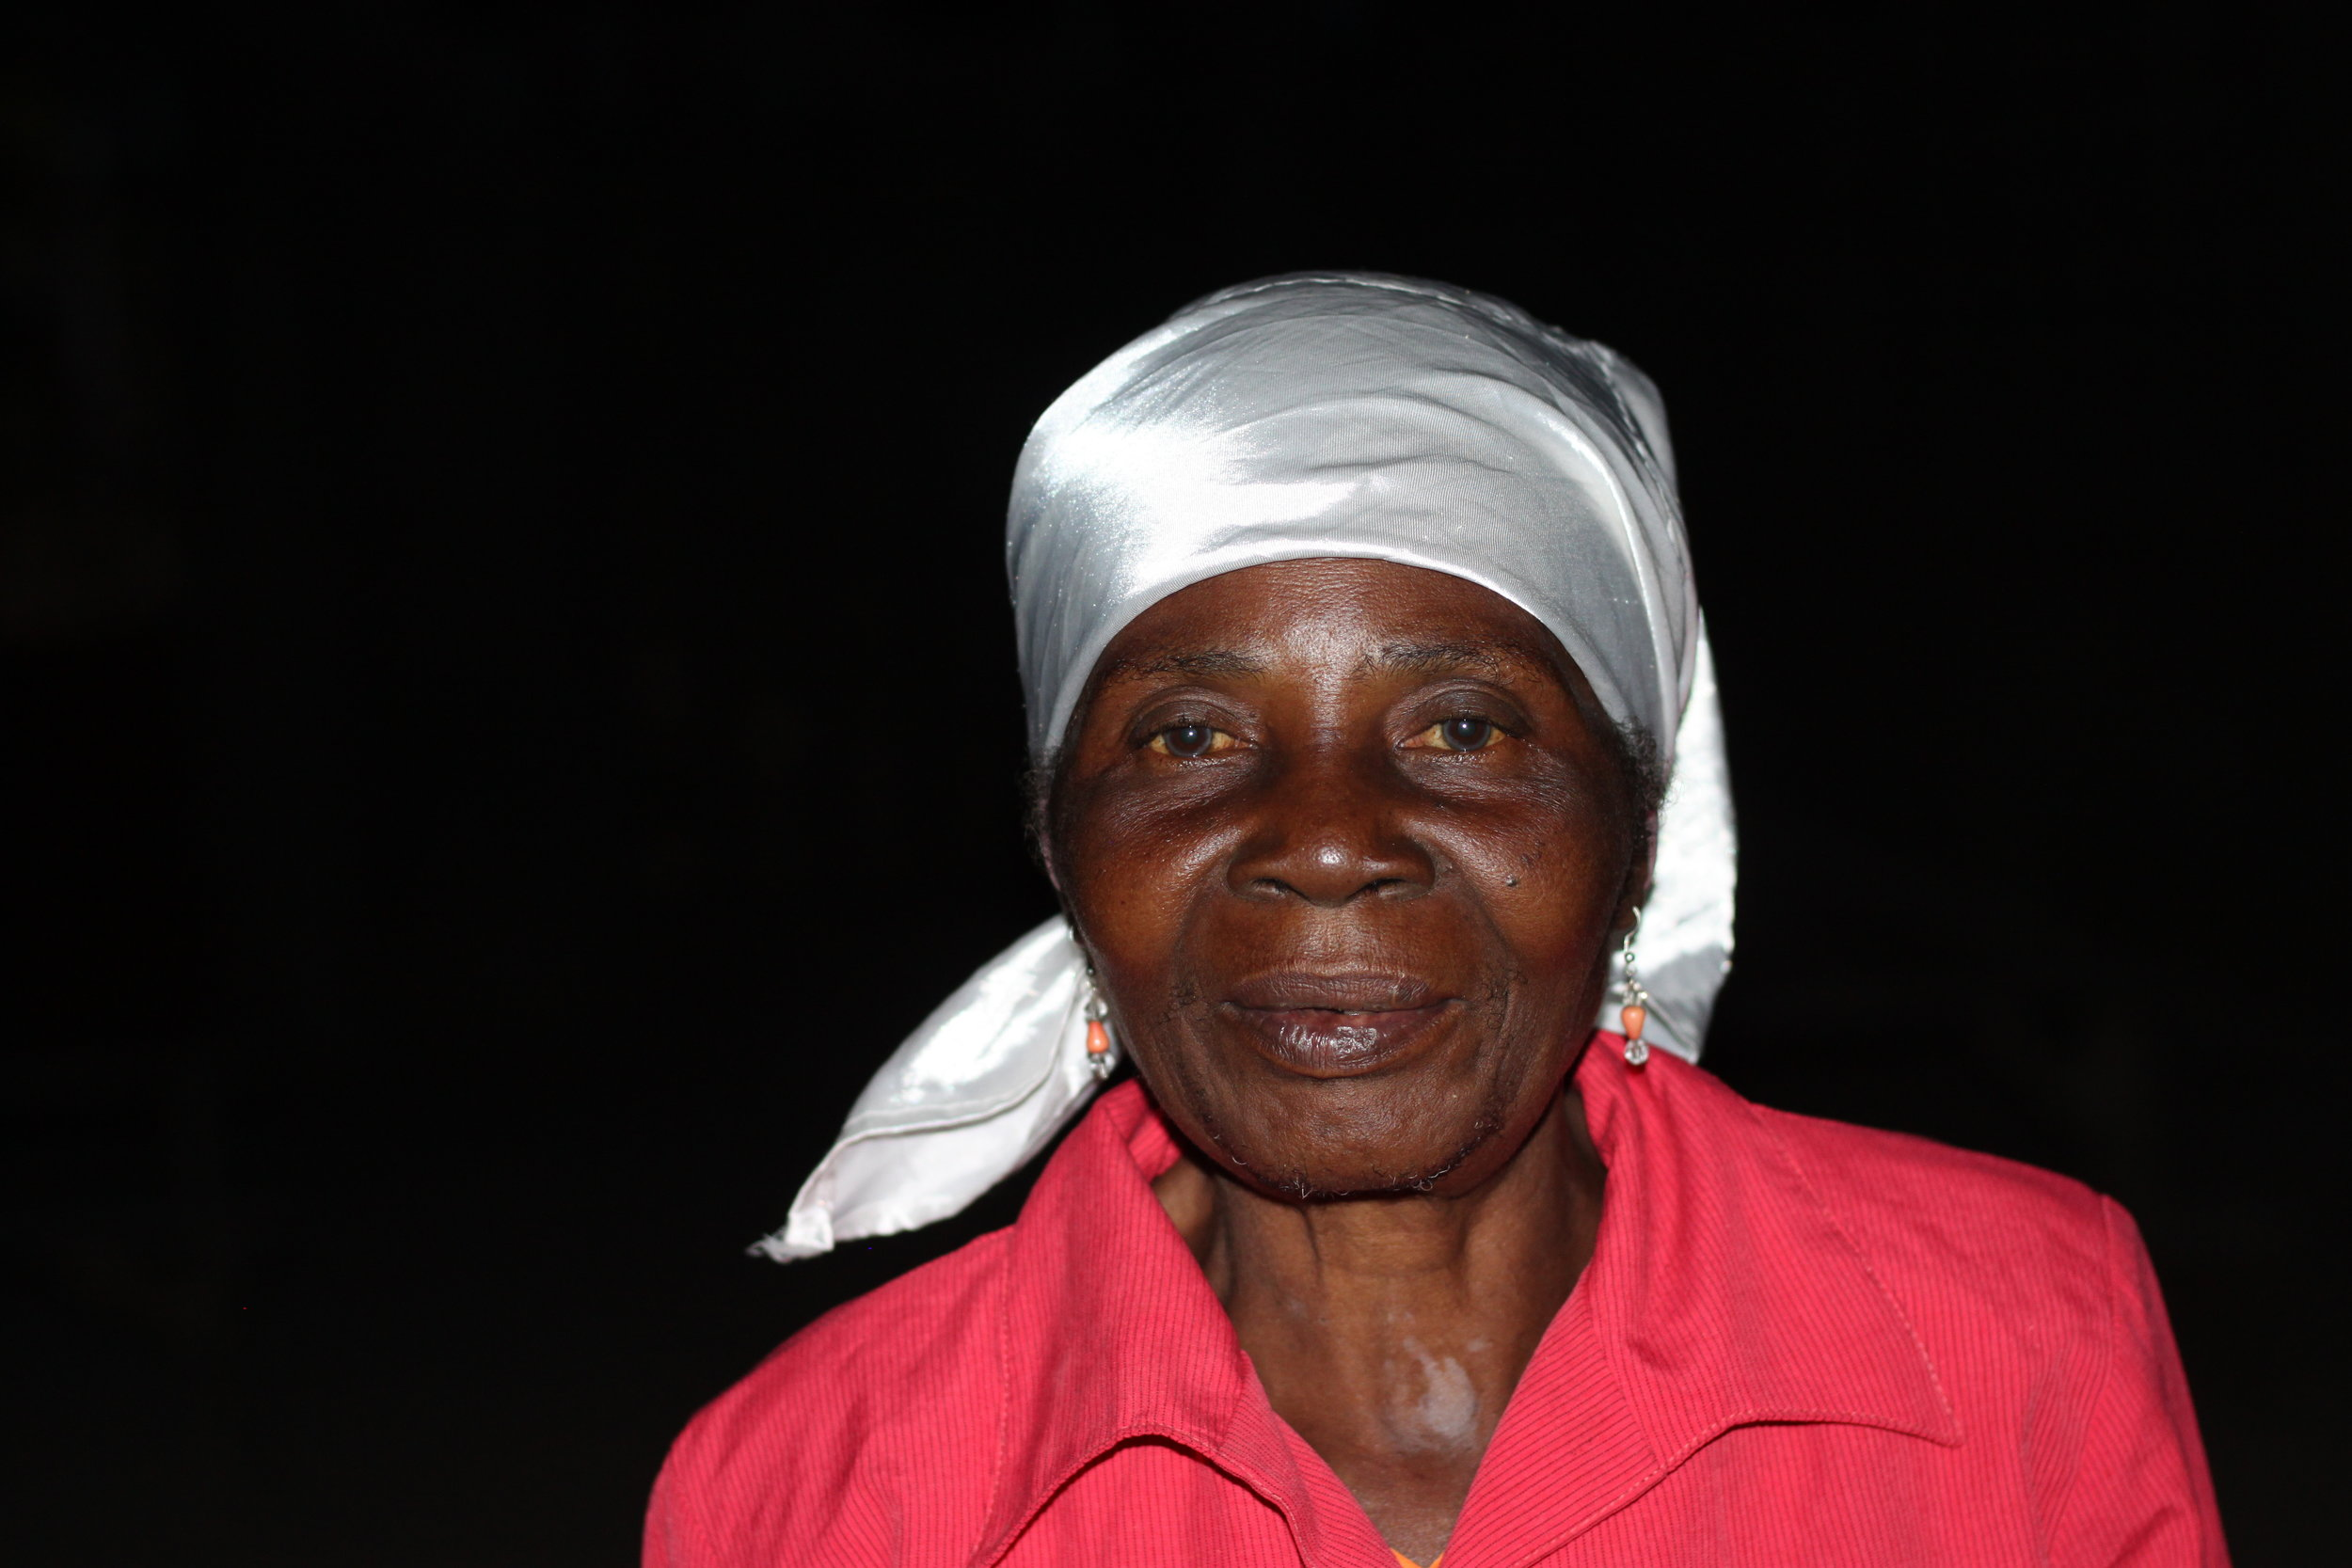 """Carmen Sharle - 45 years old""""My husband passed away last year, so I am by myself with seven children, who are all young adults but still in school in Chermaitre. I work the field, sell beans and peanuts in the market, but I still don't have enough money. """""""